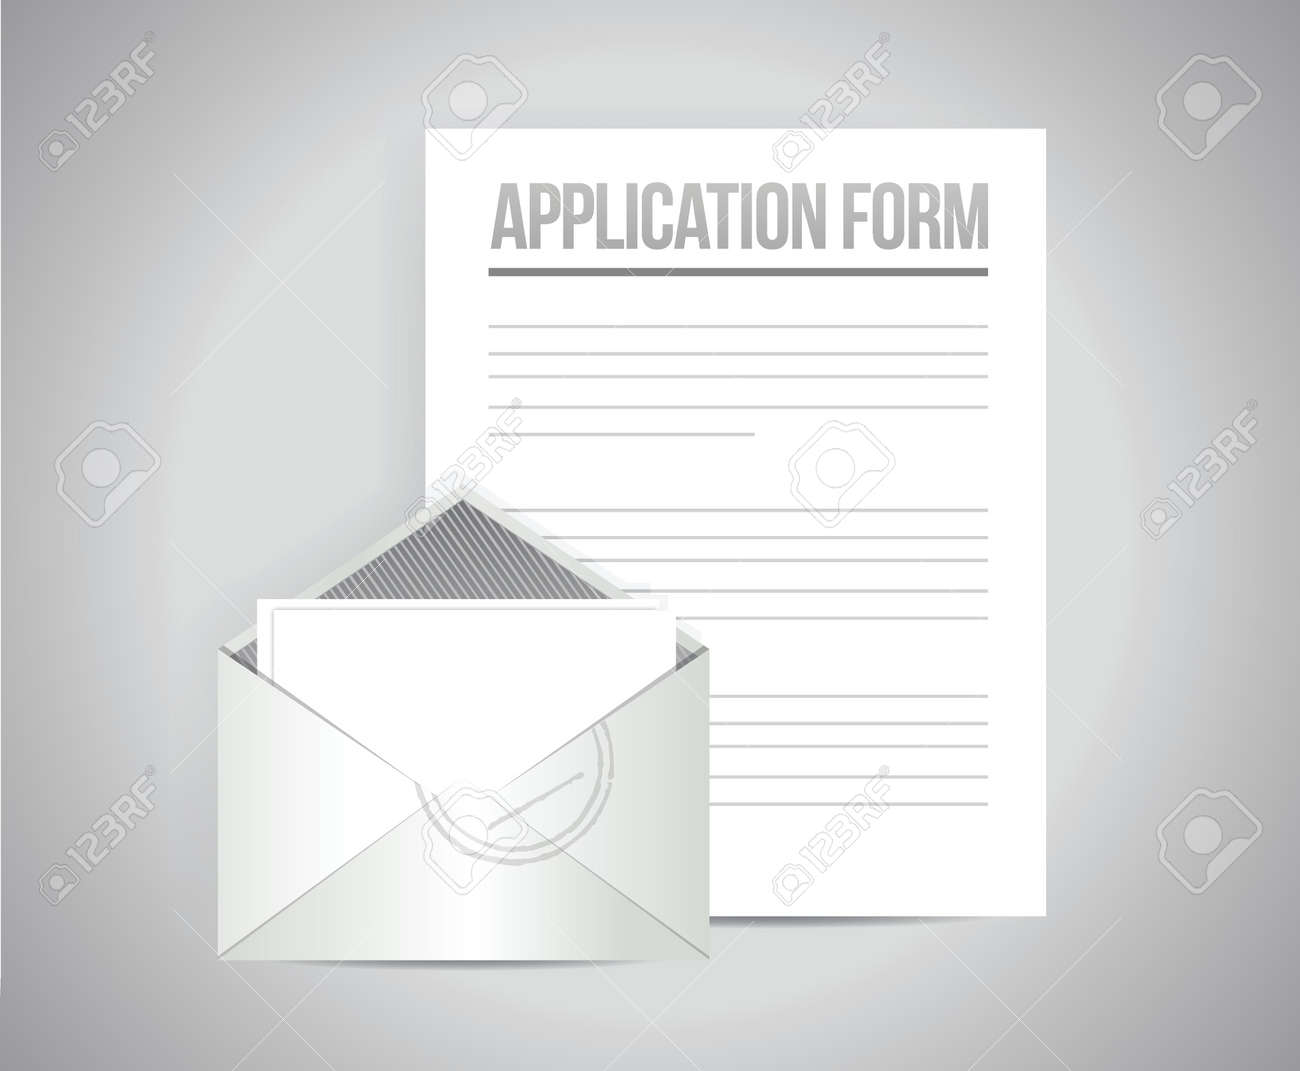 order form background design  application form illustration design graphic over a grey background